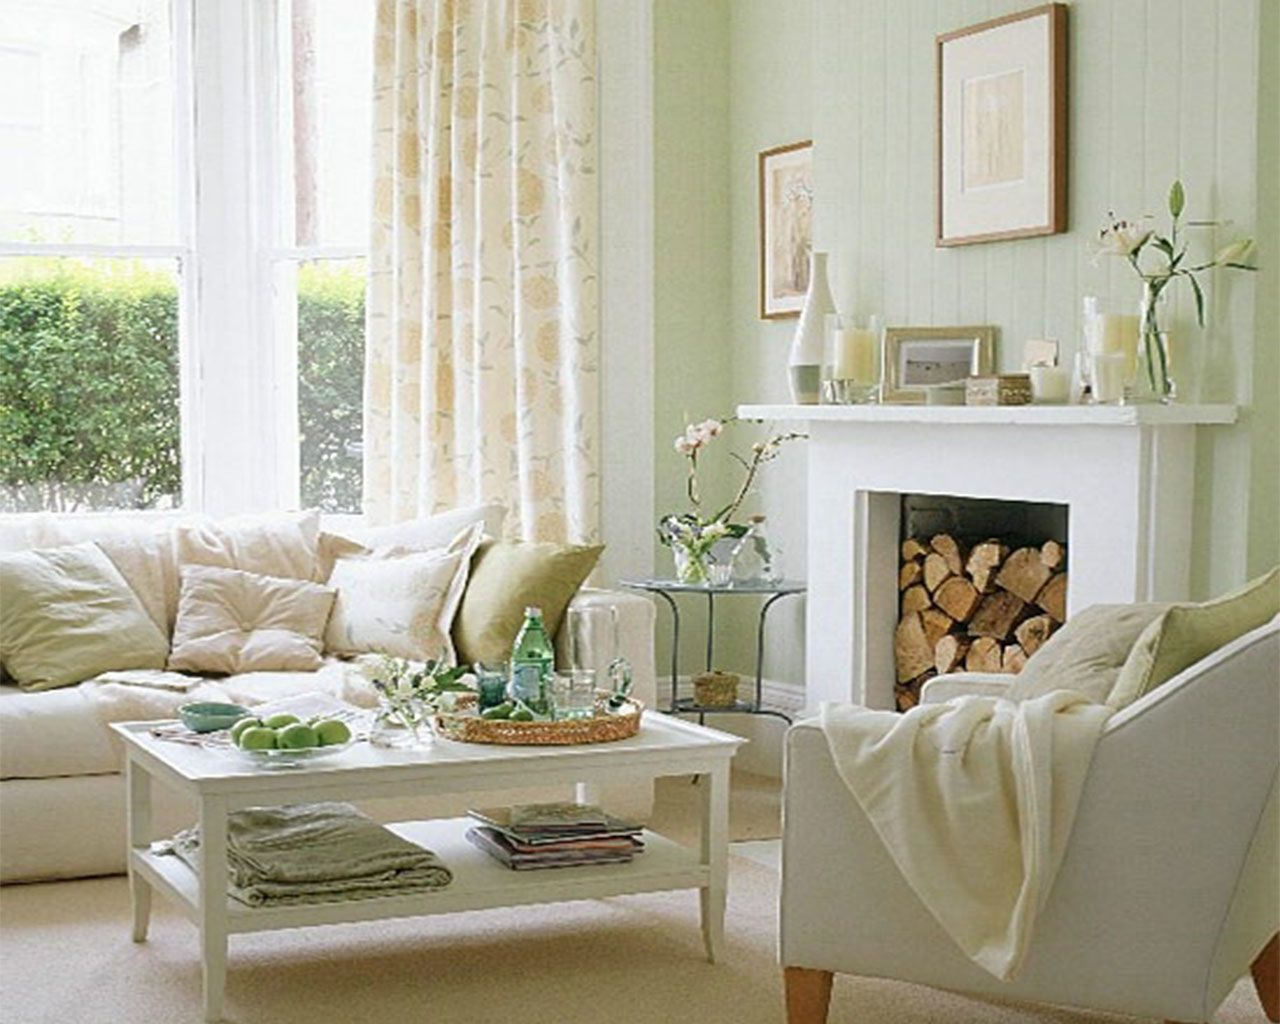 Creamy White Living Room With Accents Of Very Light Green And Blue